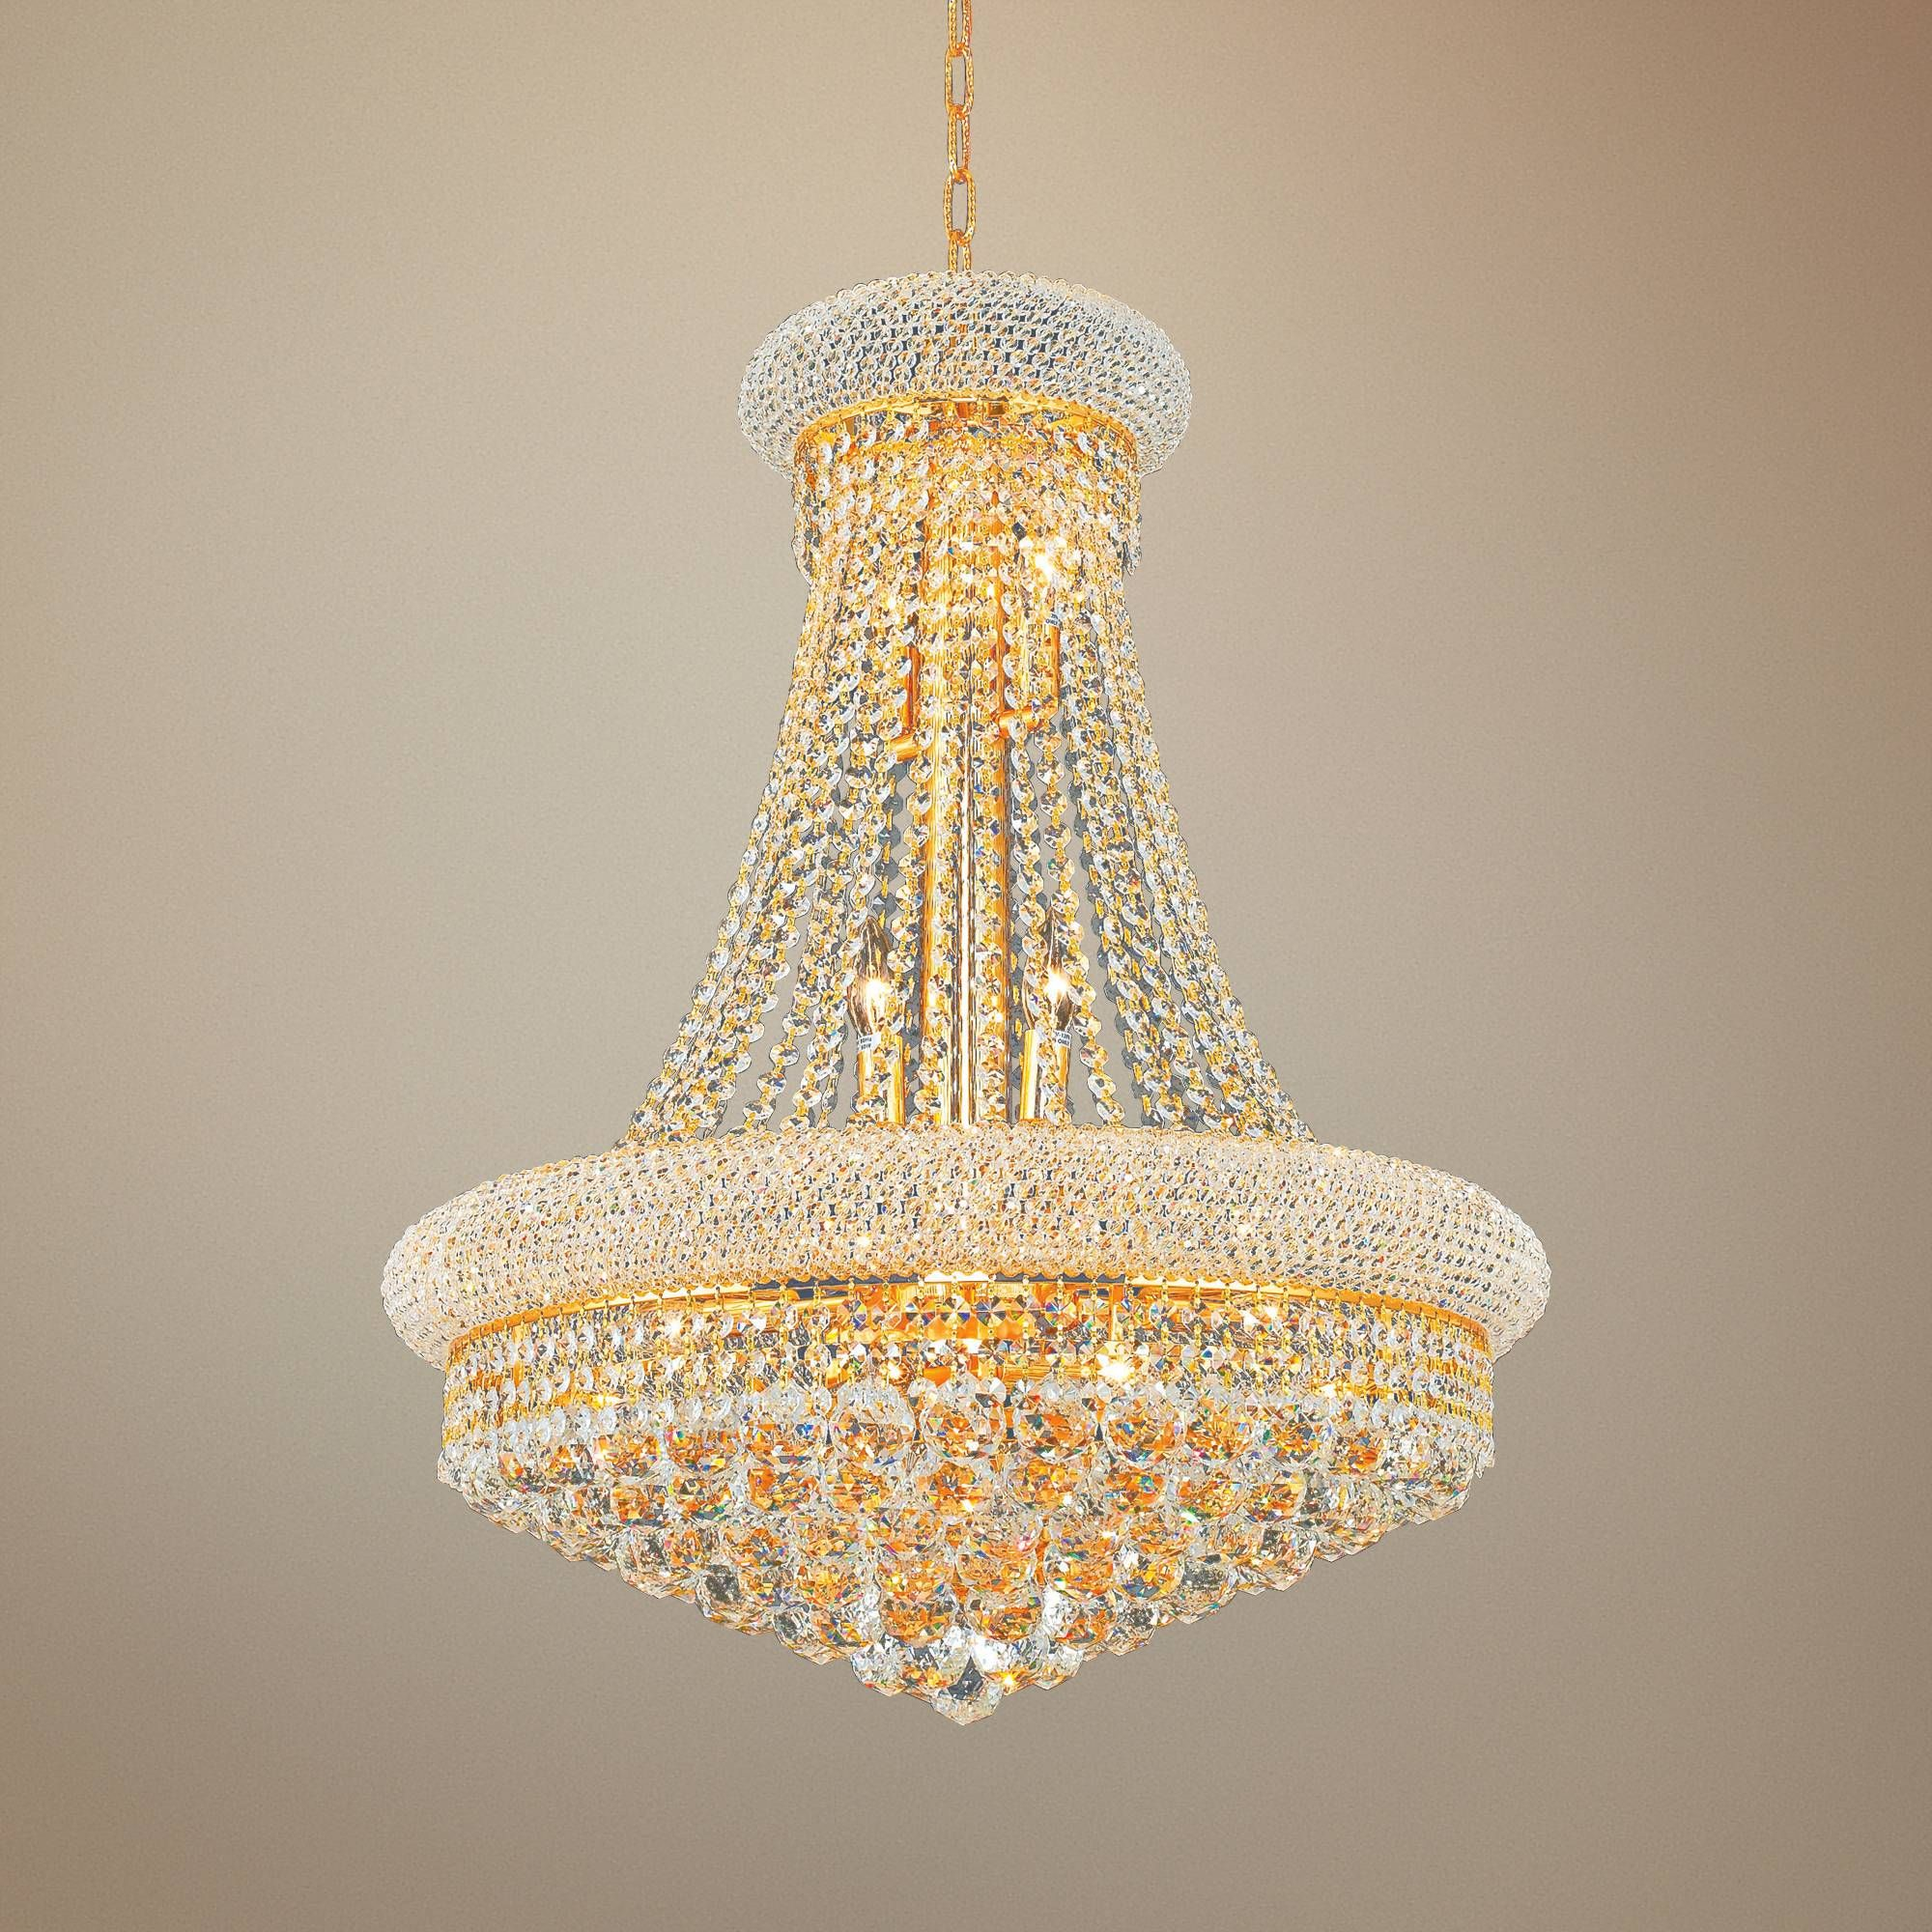 Chandelier with crystal faceted pendants, purple organza shades